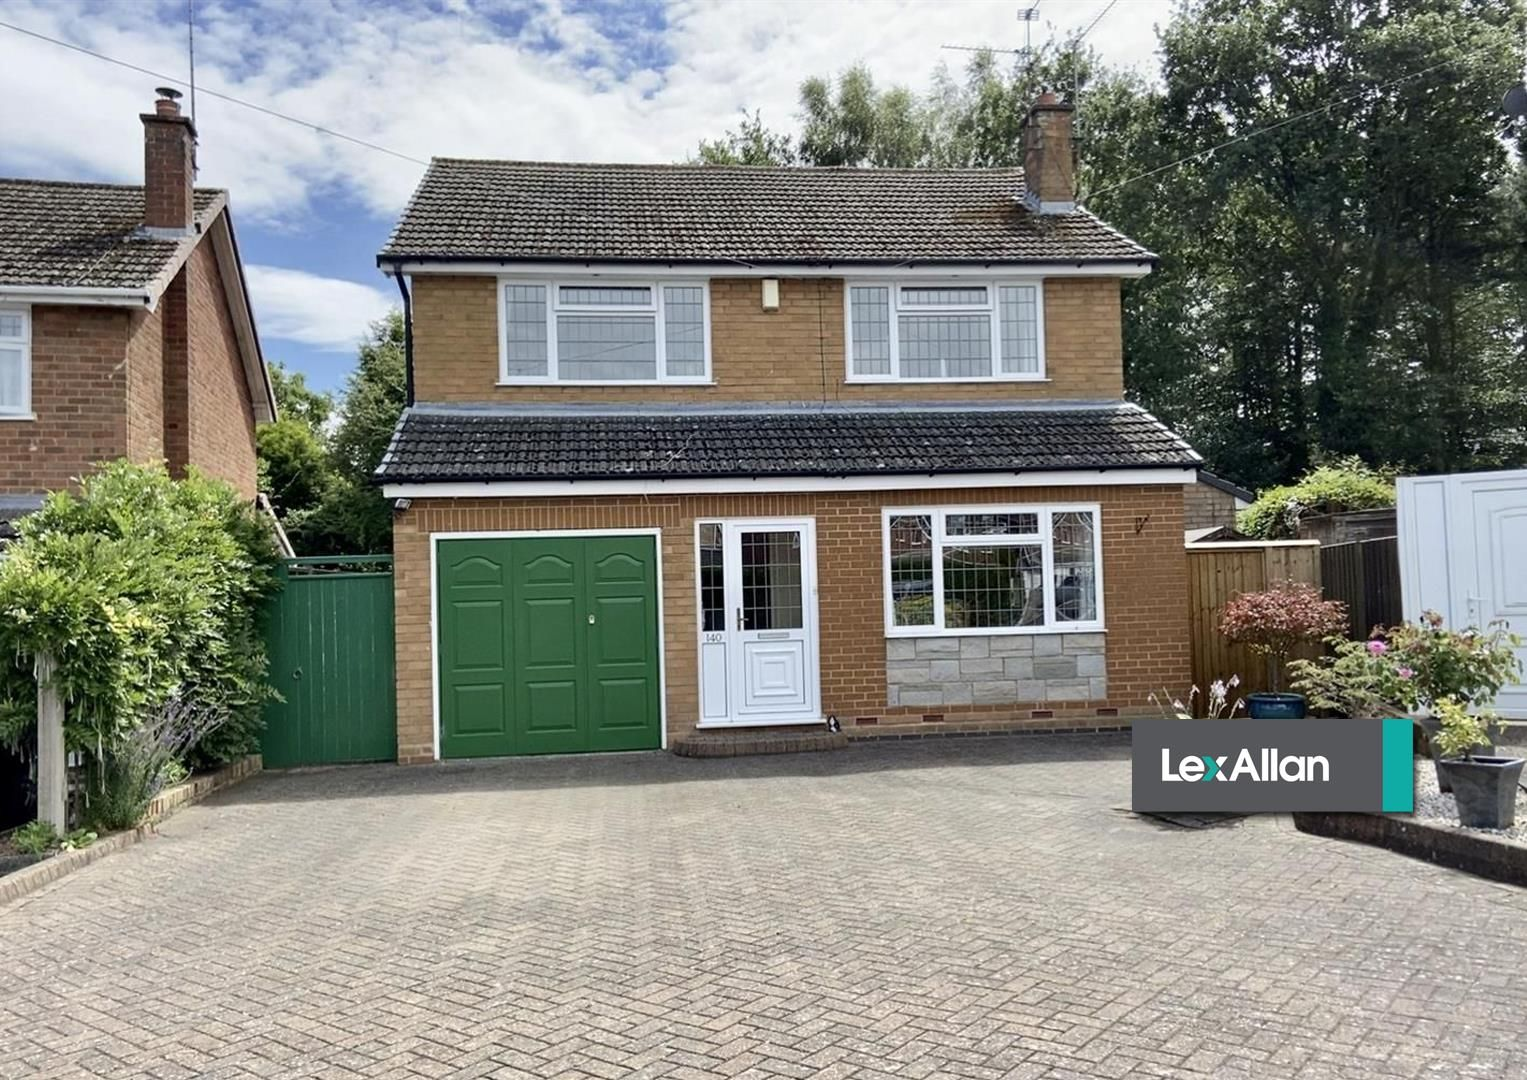 3 bed detached for sale  - Property Image 22